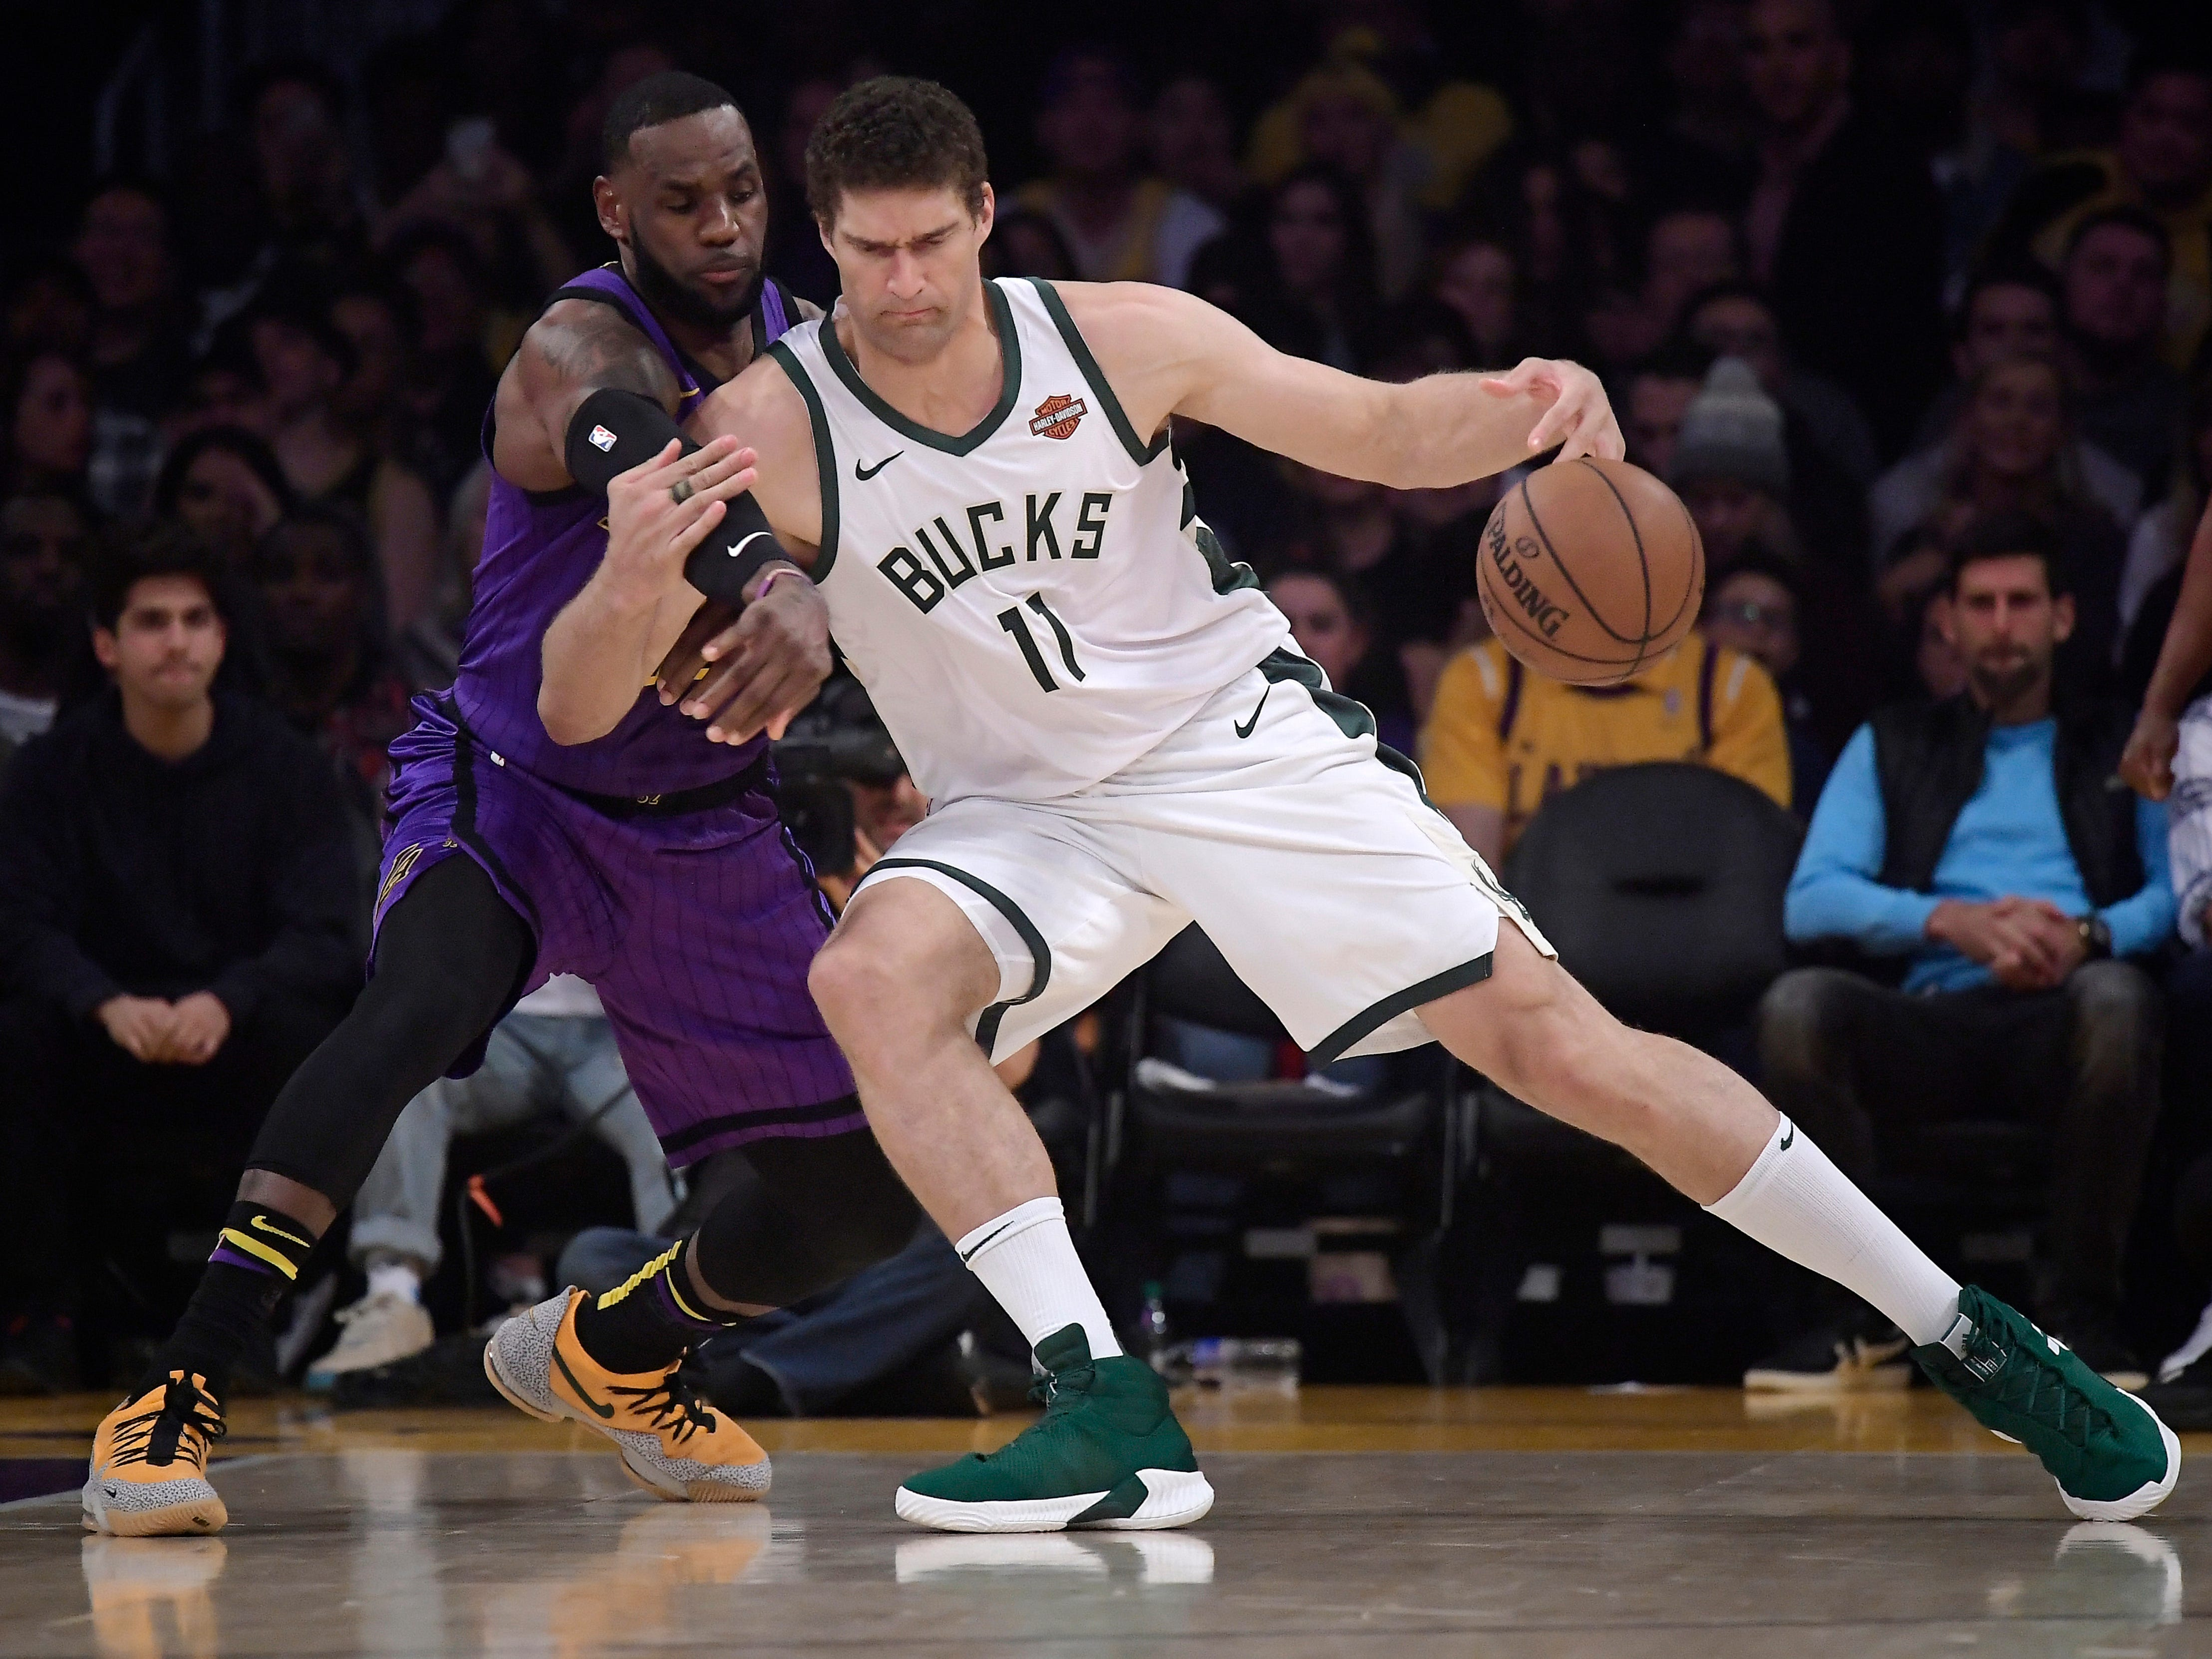 Bucks center Brook Lopez jostles with Lakers forward LeBron James as he tries to work his way to the basket Friday night.